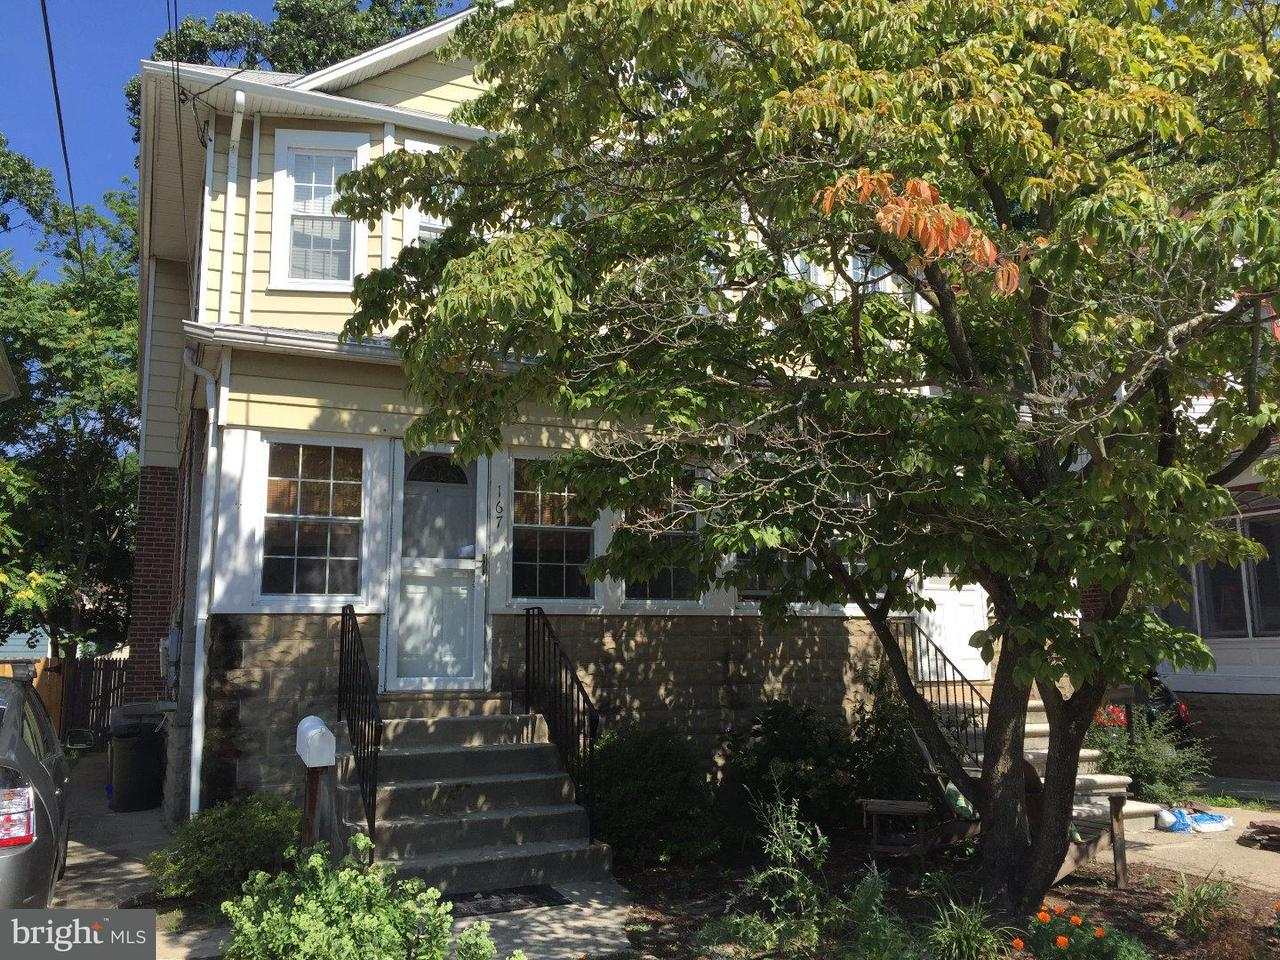 Single Family Home for Rent at 167 LAWNSIDE Avenue Collingswood, New Jersey 08108 United States